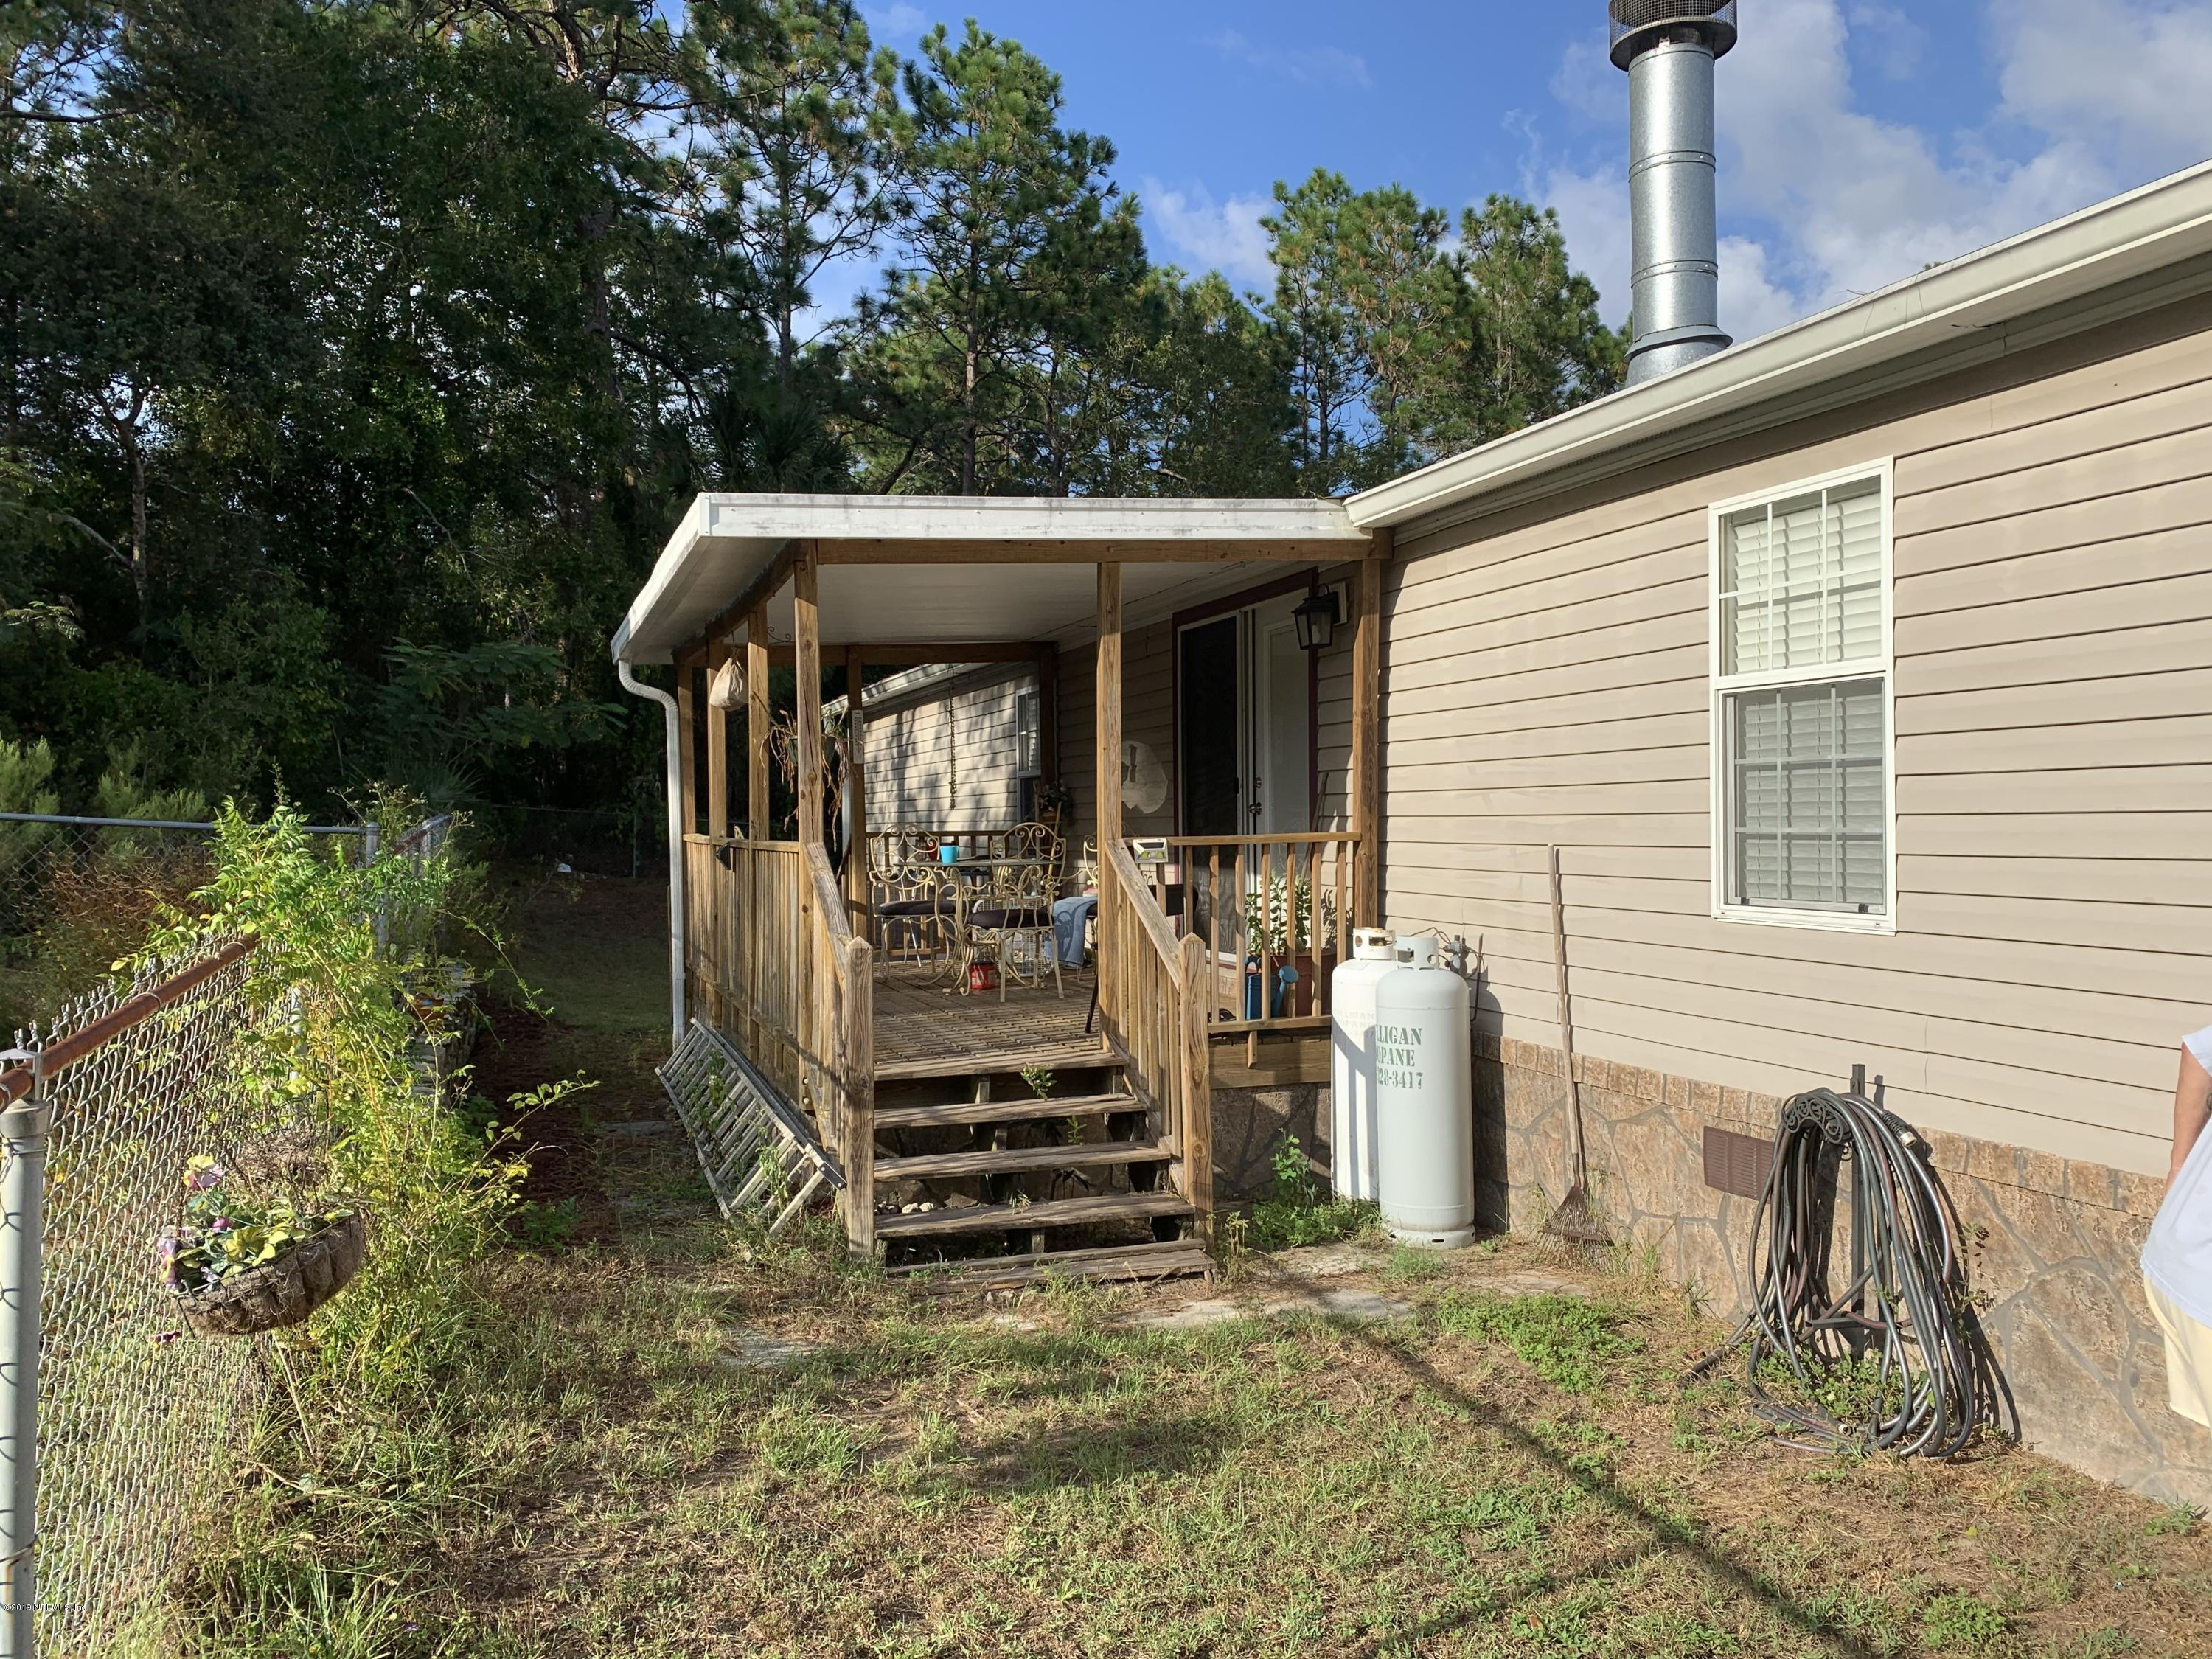 231 DEER RUN, SATSUMA, FLORIDA 32189, 3 Bedrooms Bedrooms, ,2 BathroomsBathrooms,Residential,For sale,DEER RUN,1018318